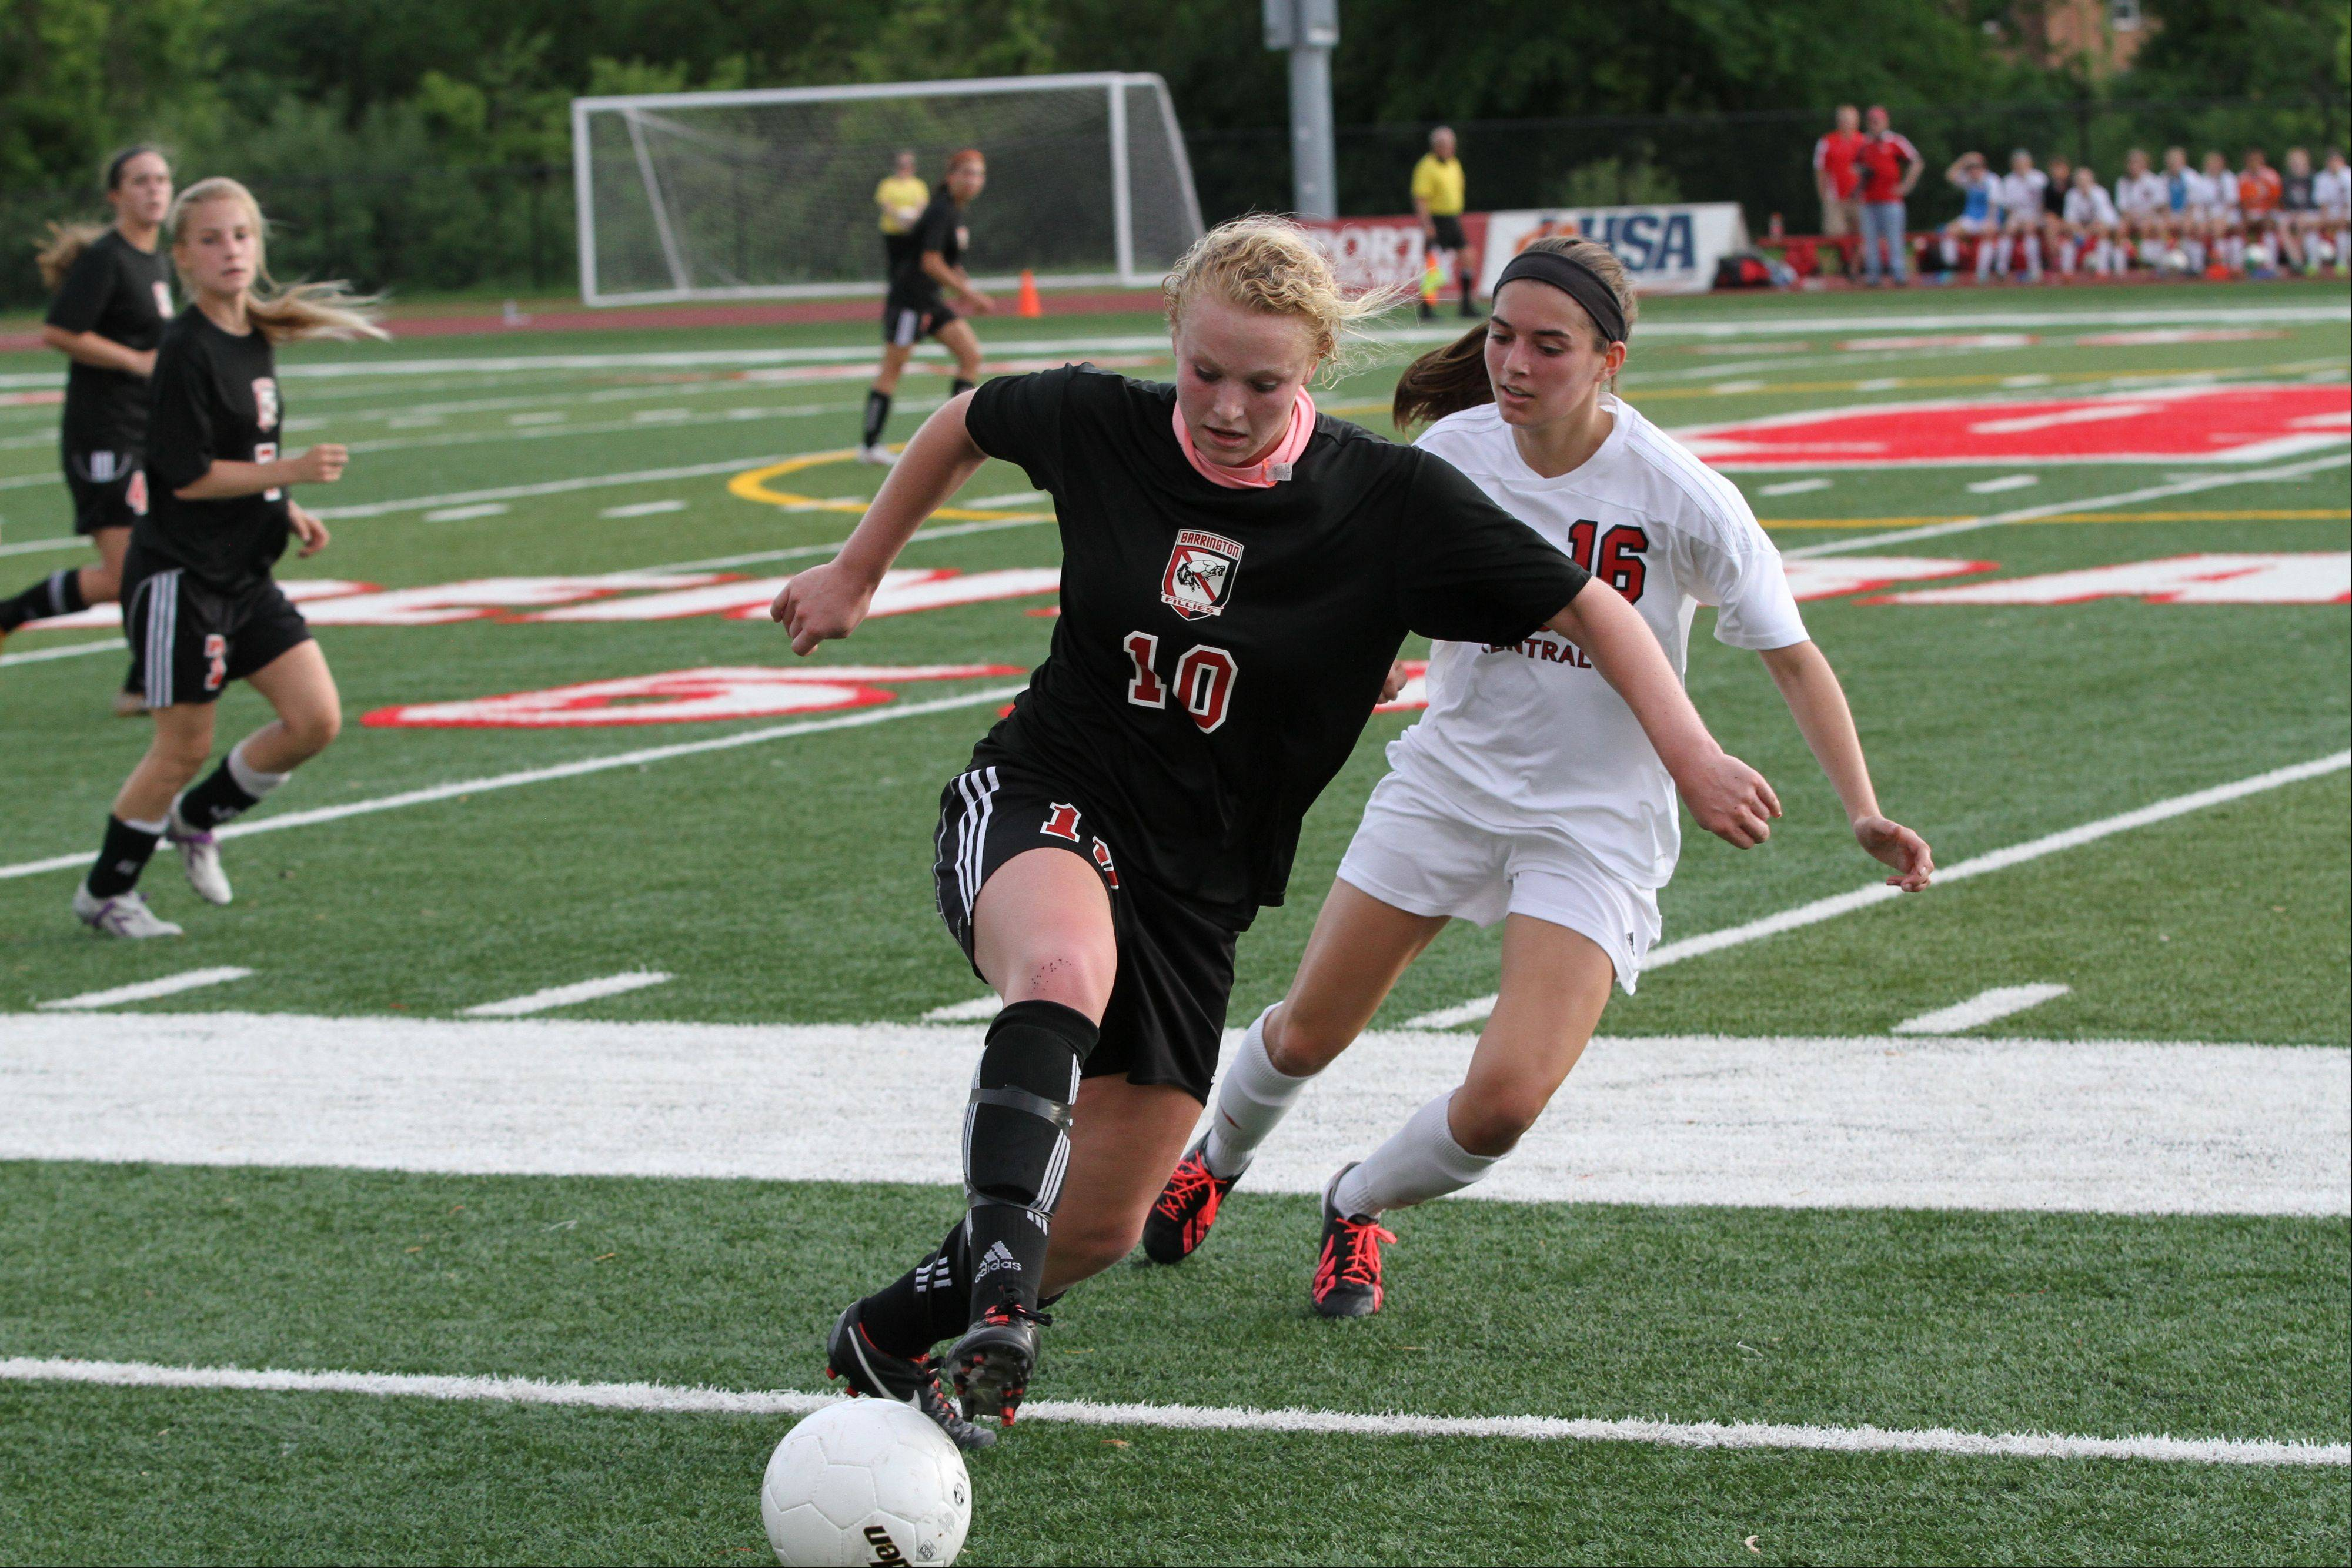 Barrington's Gabby McLaurin keeps the ball away from Hinsdale Central midfielder Katherine Treankler in the Class 3A girls soccer state semifinals Friday at North Central College.